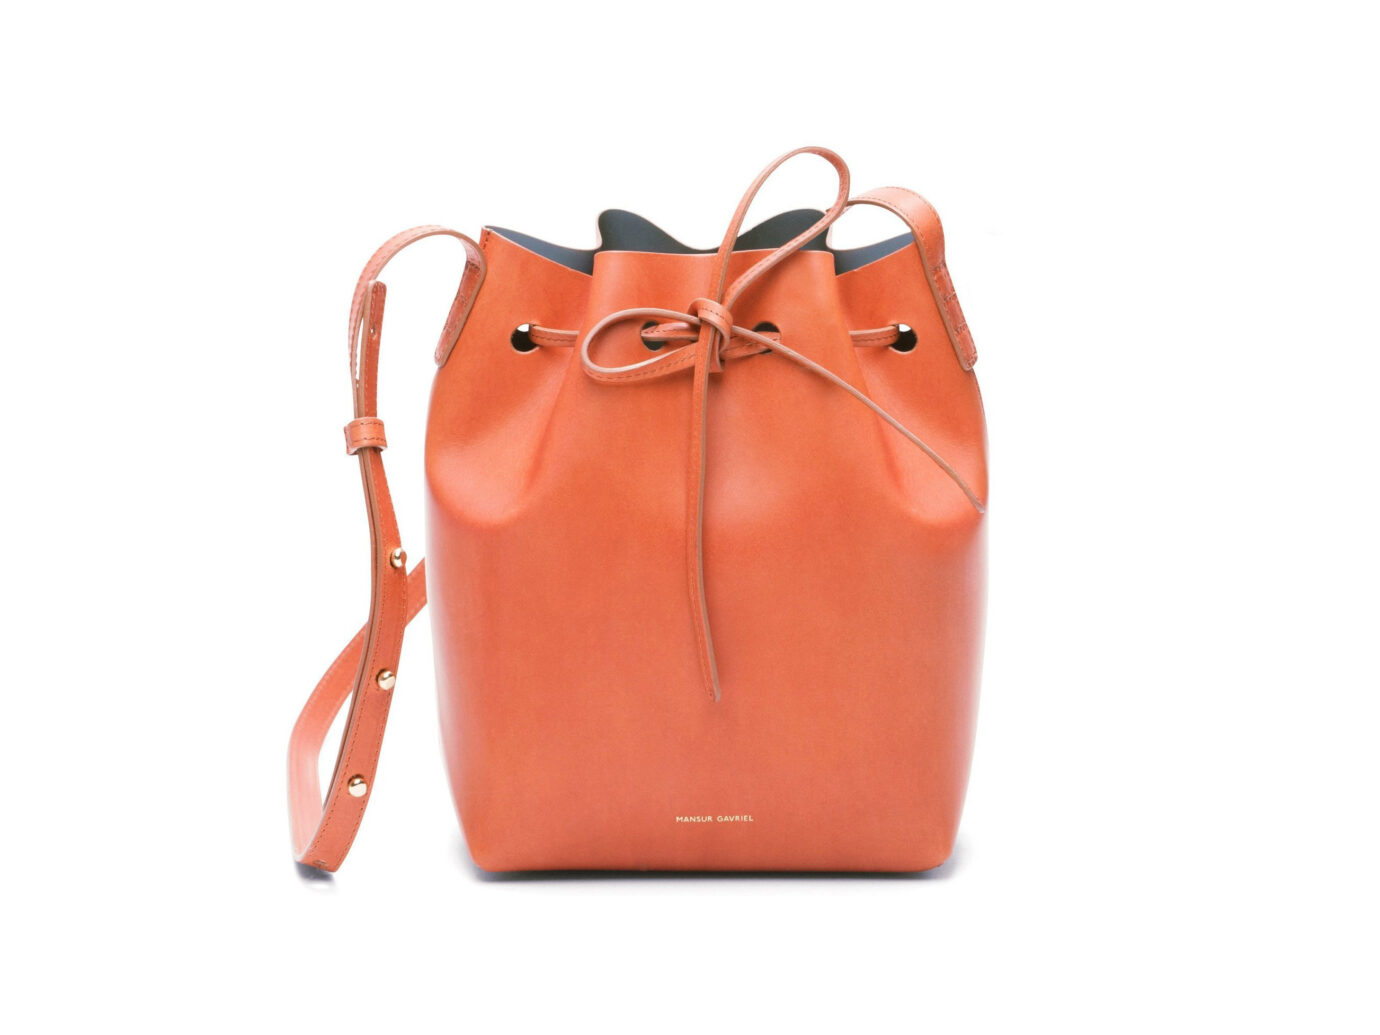 Mansur Gavriel Brandy Mini Bucket Bag